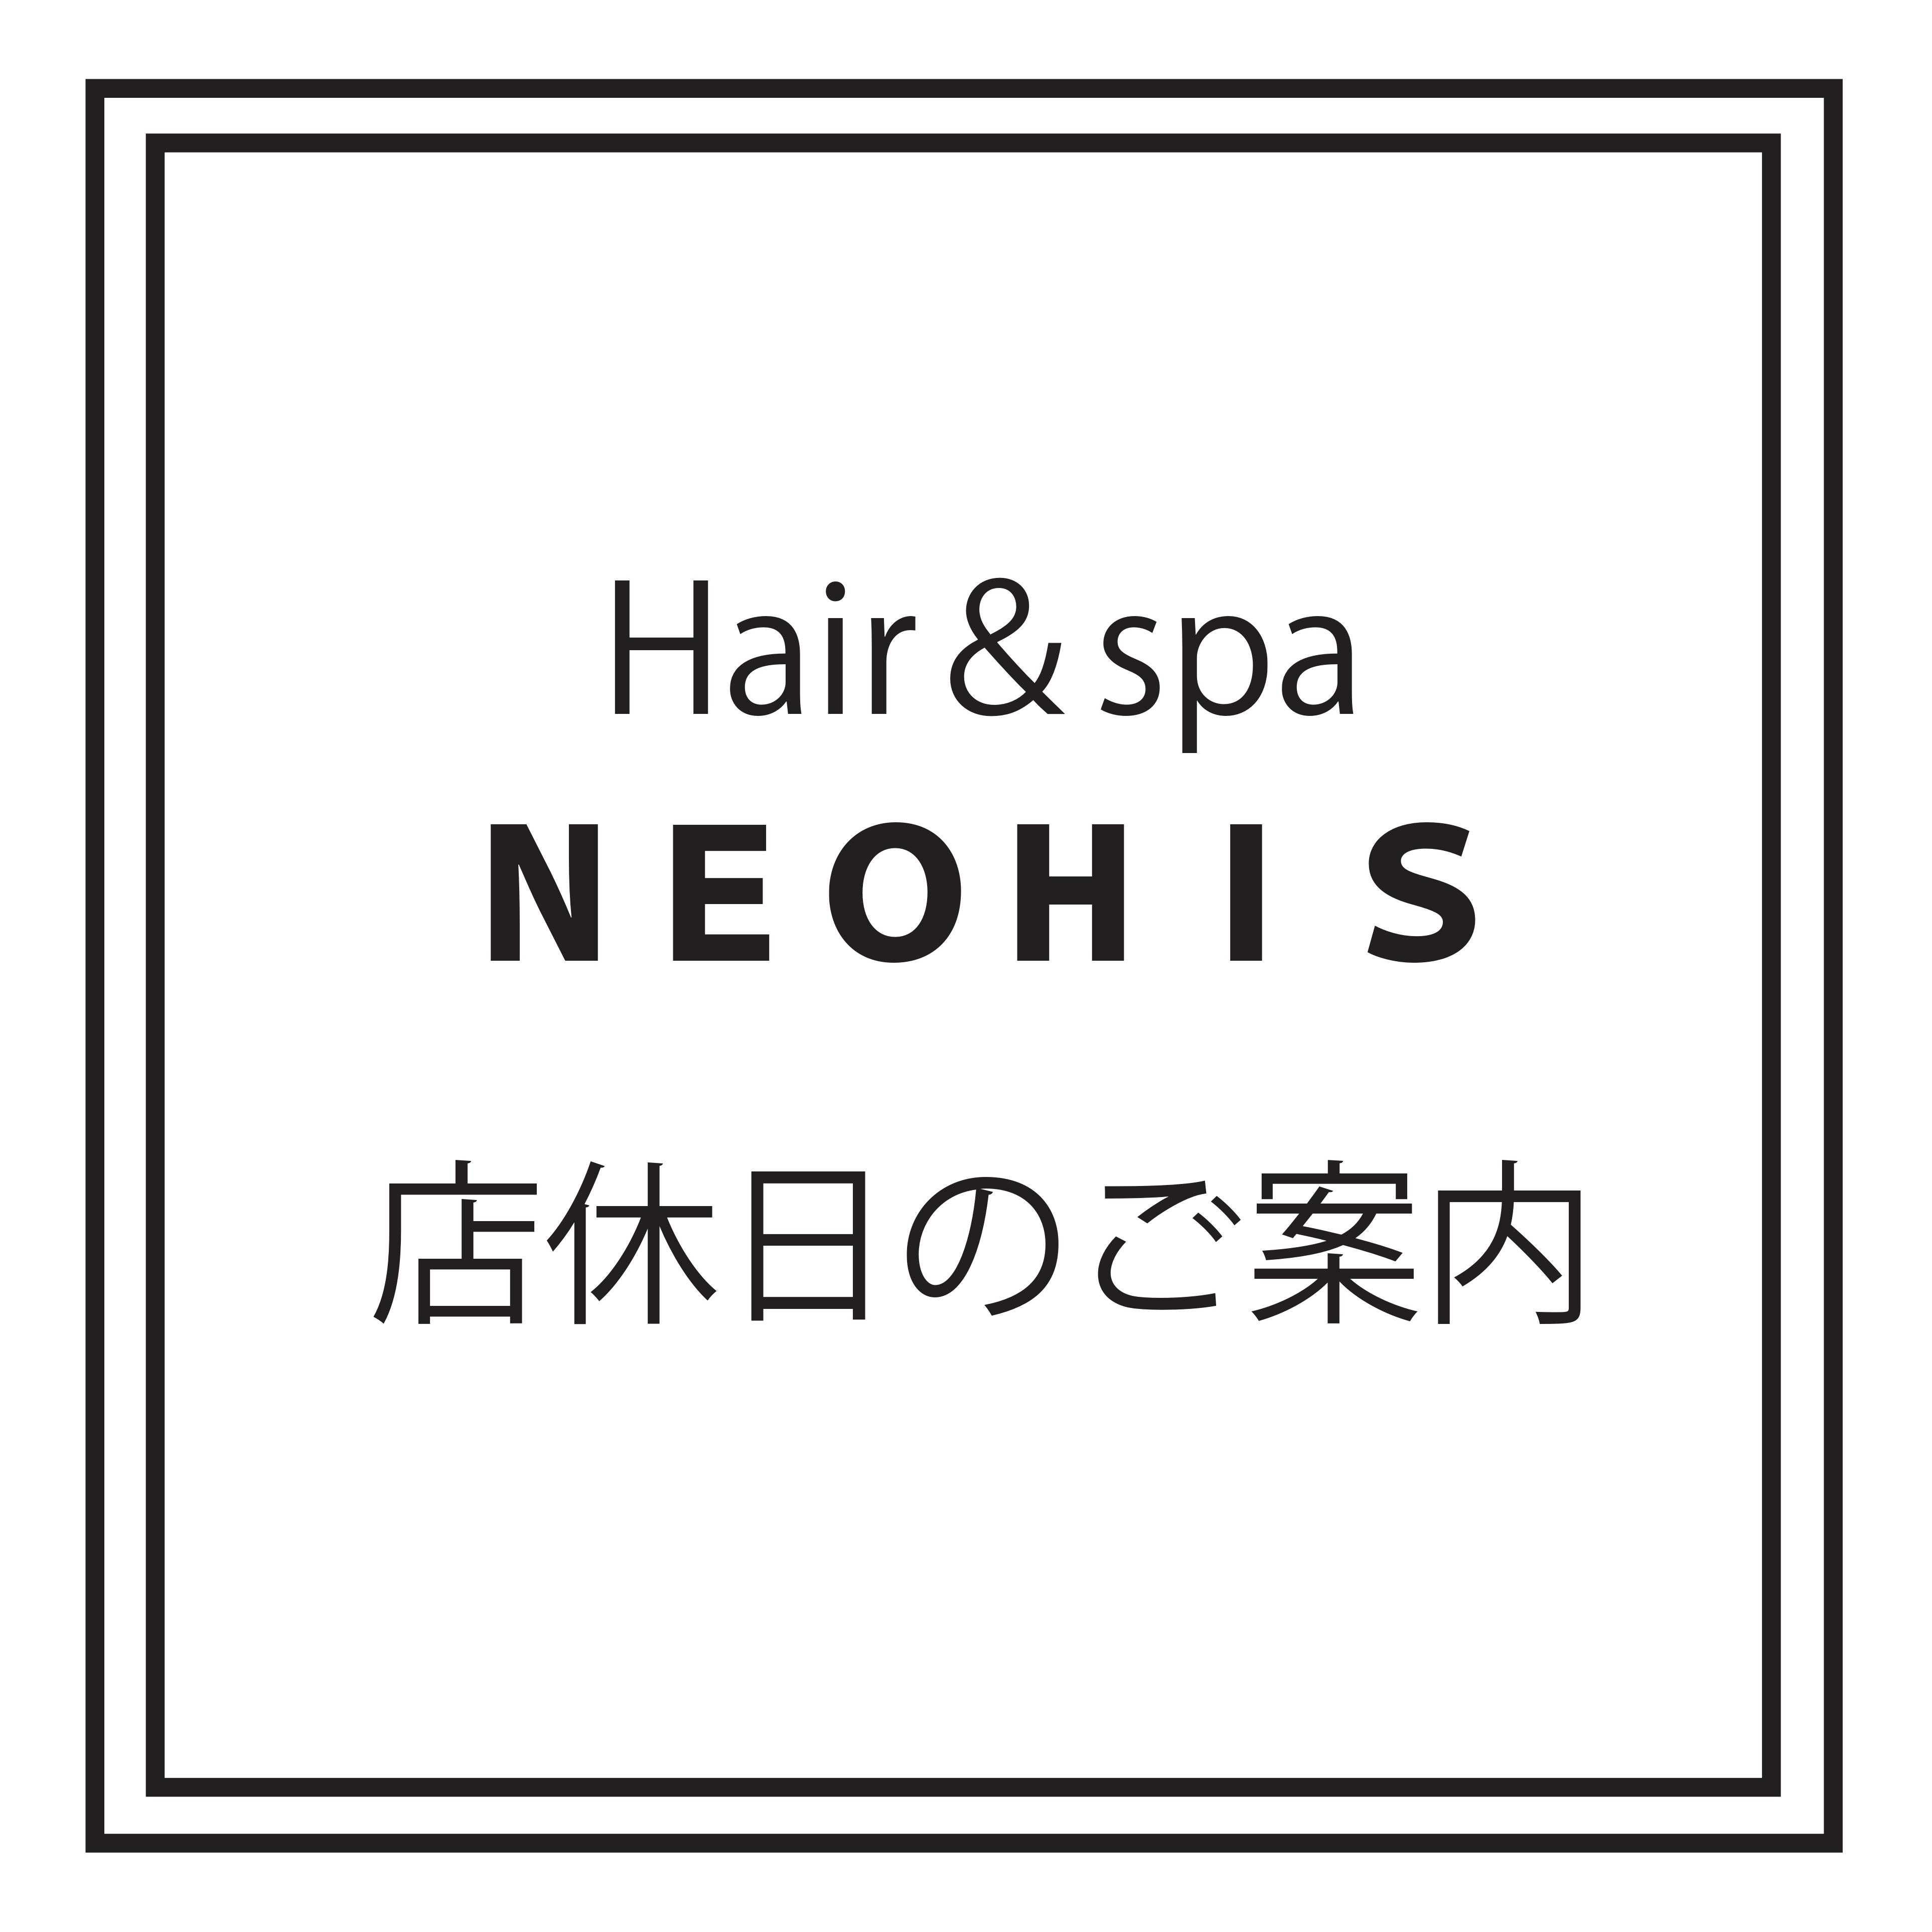 Hair&spa NEOHIS 1月・2月店休日のご案内